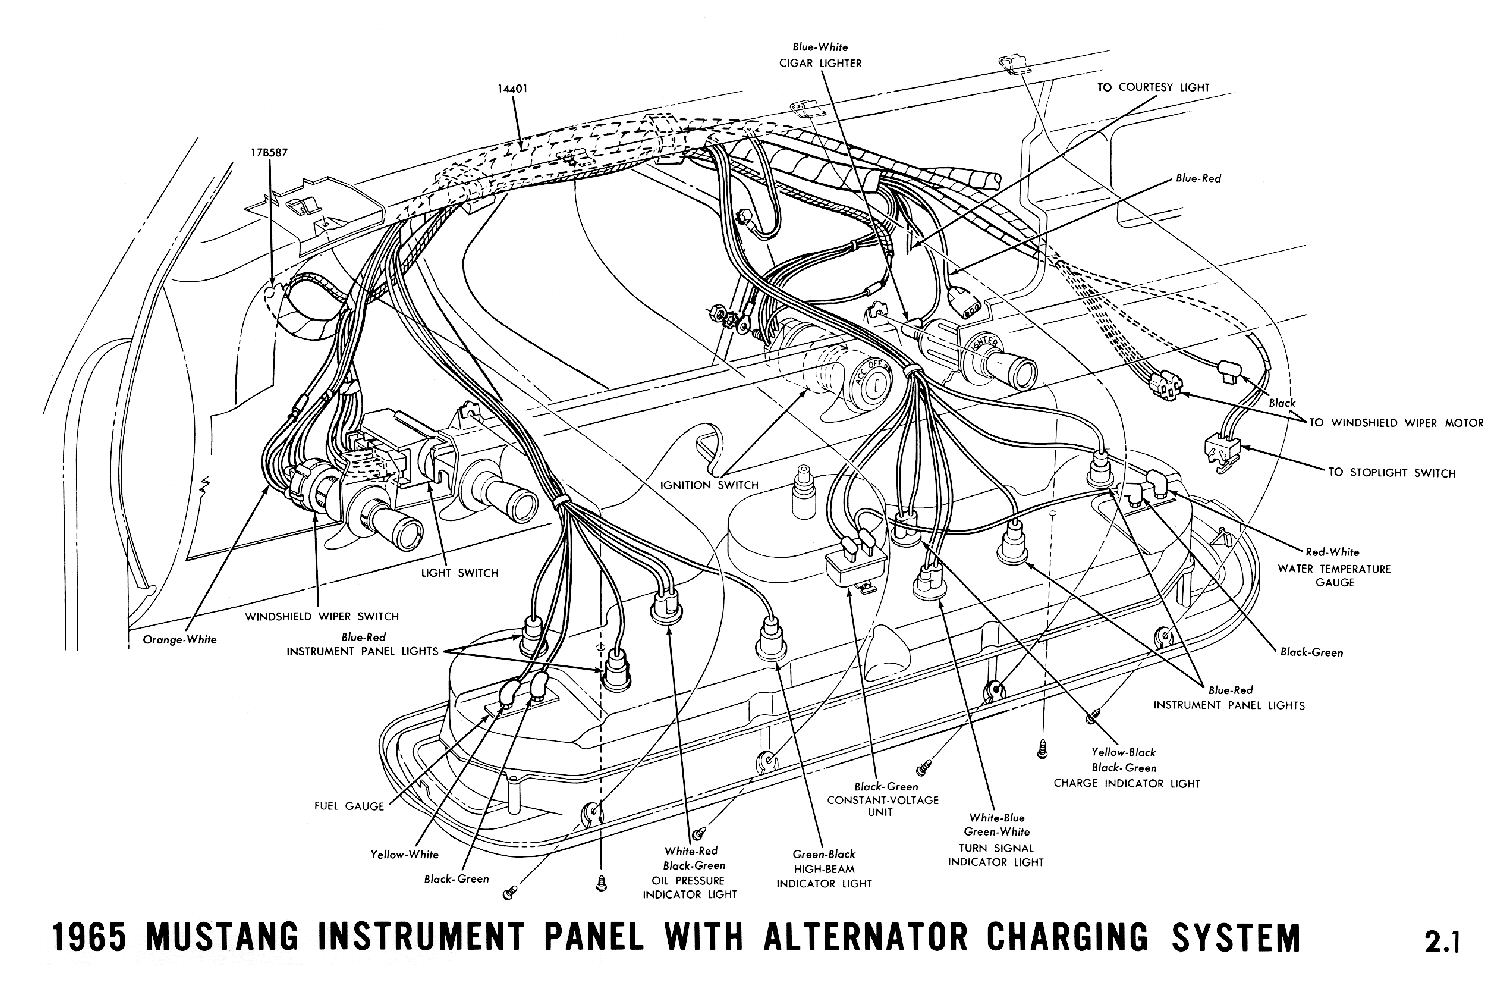 1965a 1965 mustang wiring diagrams average joe restoration 1969 mustang instrument cluster wiring diagram at n-0.co